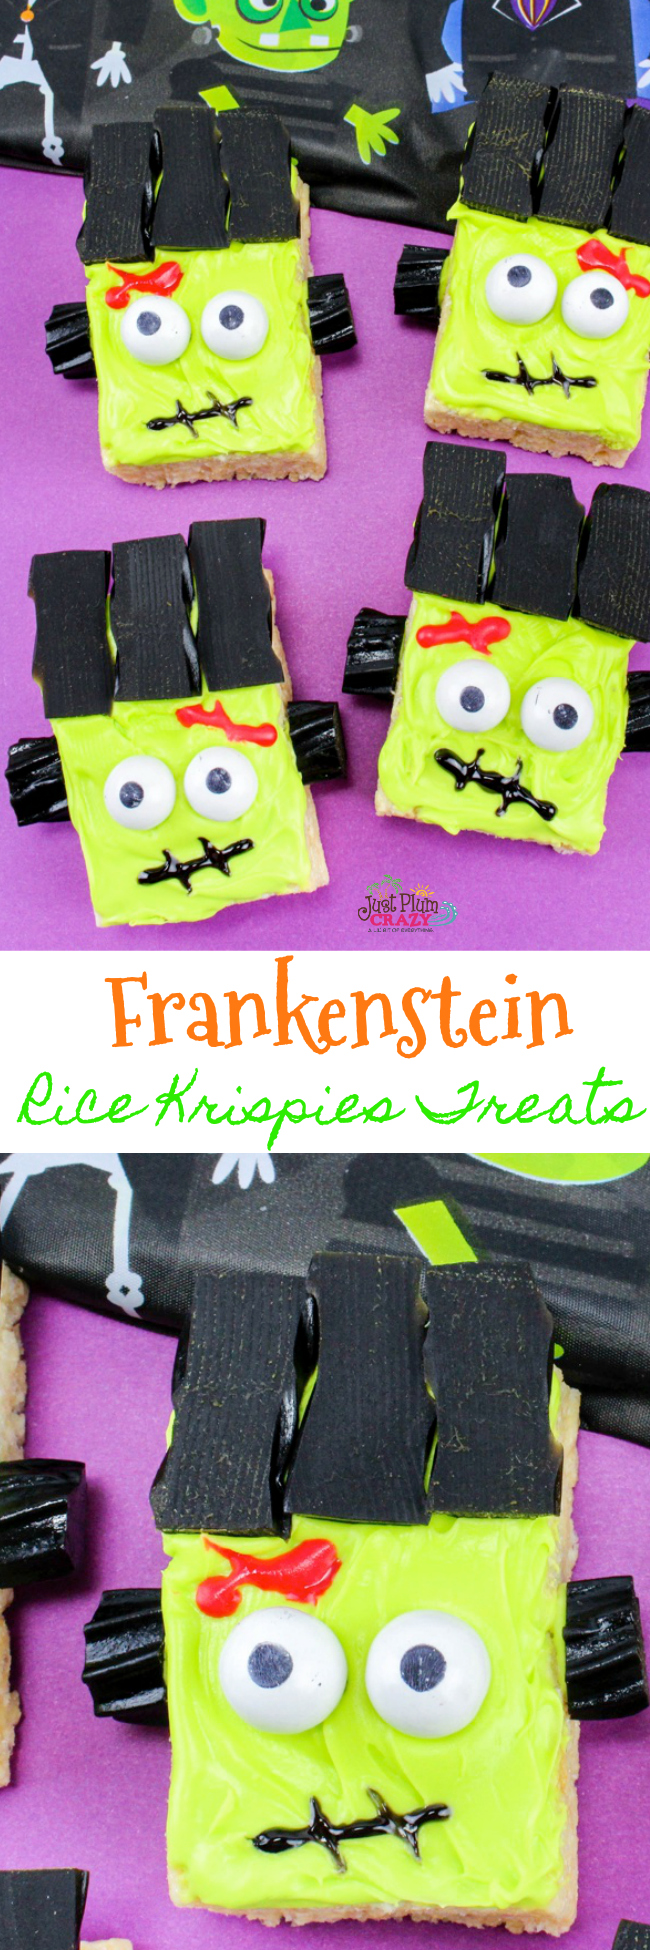 Who doesn't love a good scary treat! The Frankenstein Rice Krispies Treats is perfect for any party whether it's at home, at school, or at the office.